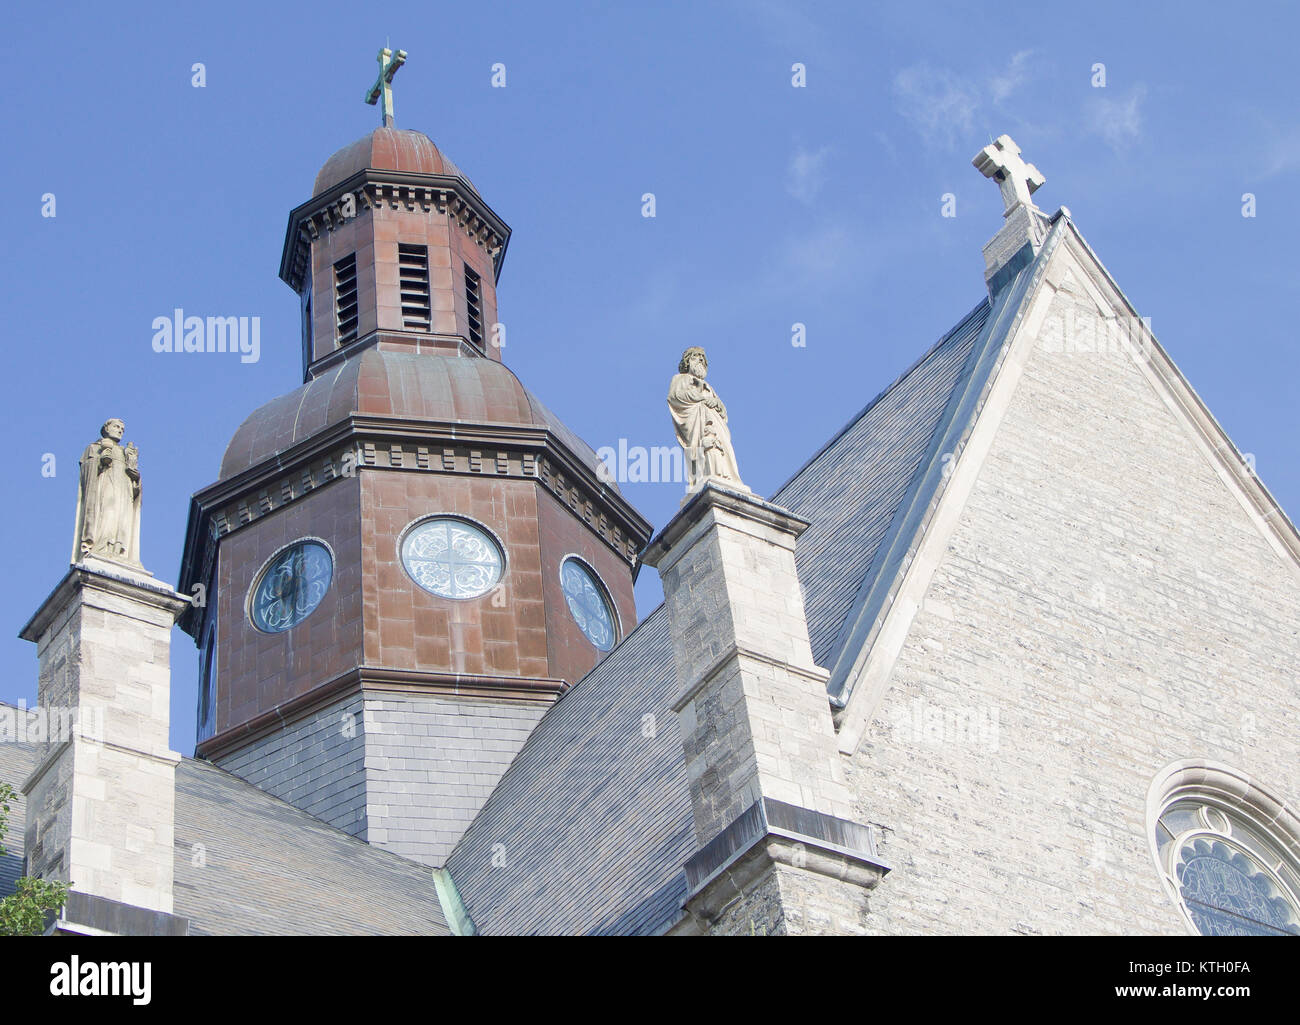 Exterior daytime steeple and statues atop Church of St. Stanislaus Bishop and Martyr named after Stanislaus of szczepanow - Stock Image